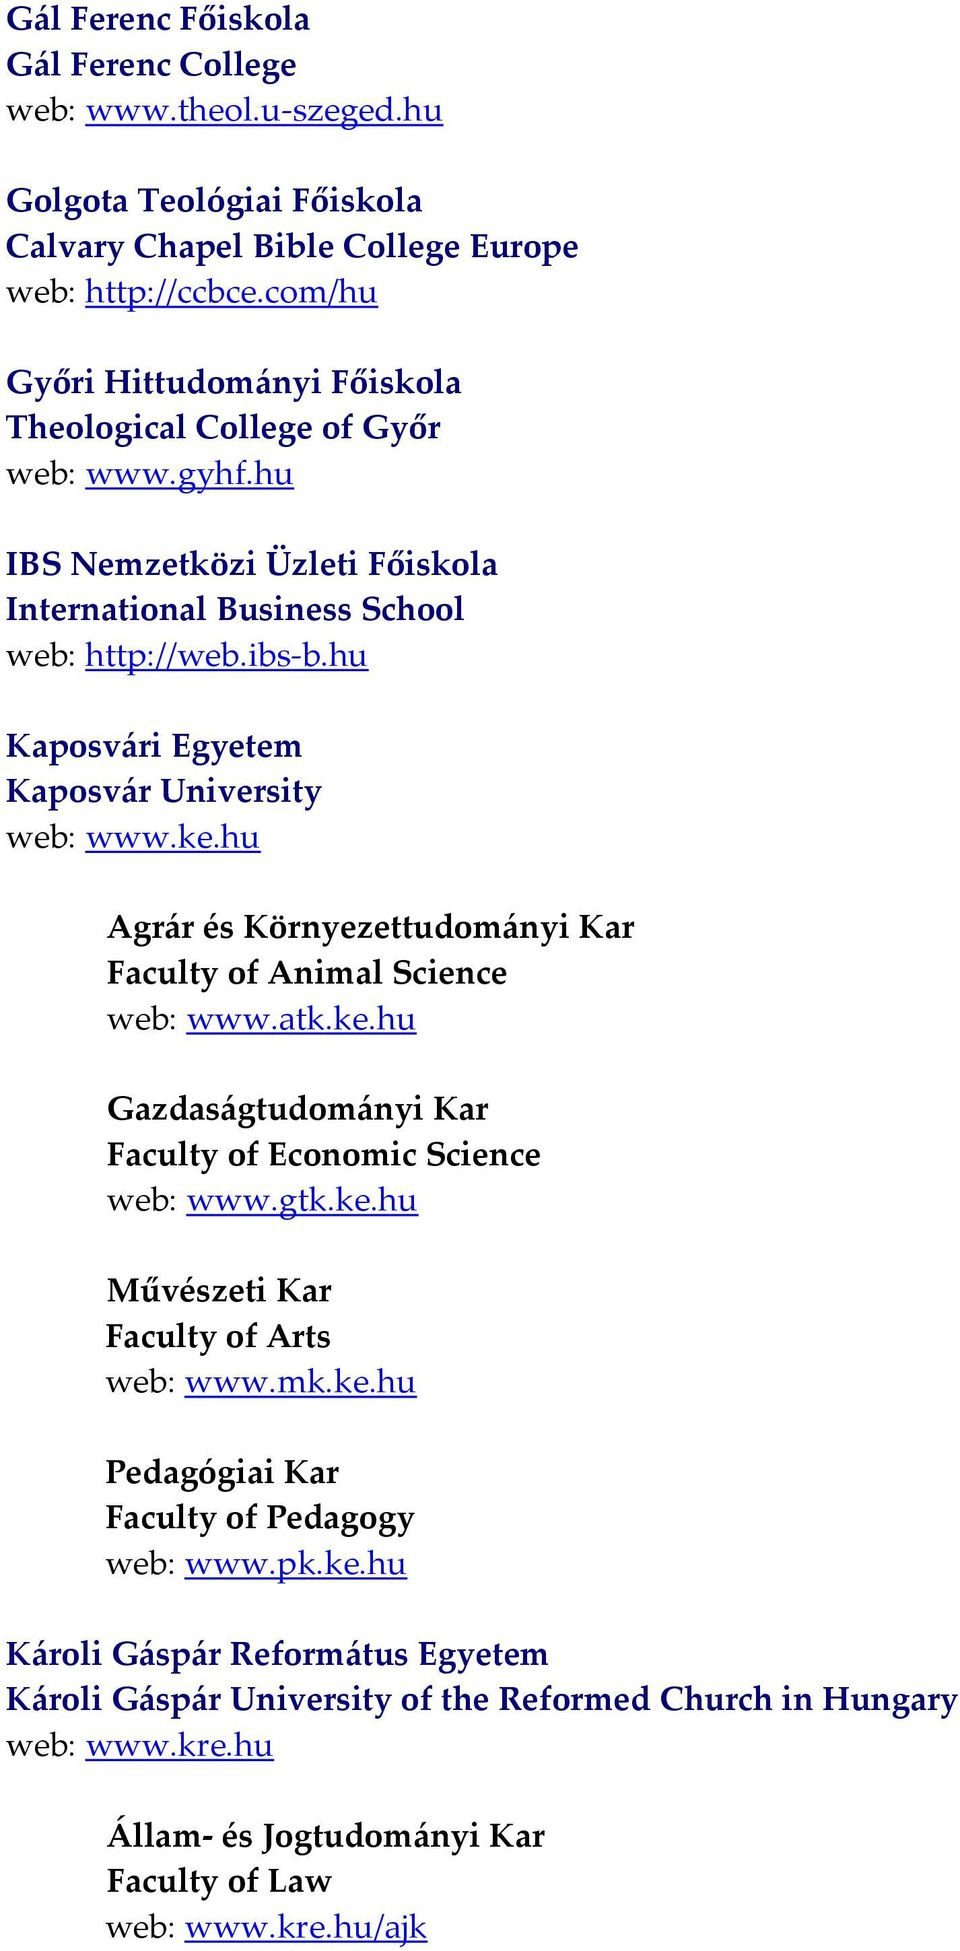 hu Kaposvári Egyetem Kaposvár University web: www.ke.hu Agrár és Környezettudományi Kar Faculty of Animal Science web: www.atk.ke.hu Gazdaságtudományi Kar Faculty of Economic Science web: www.gtk.